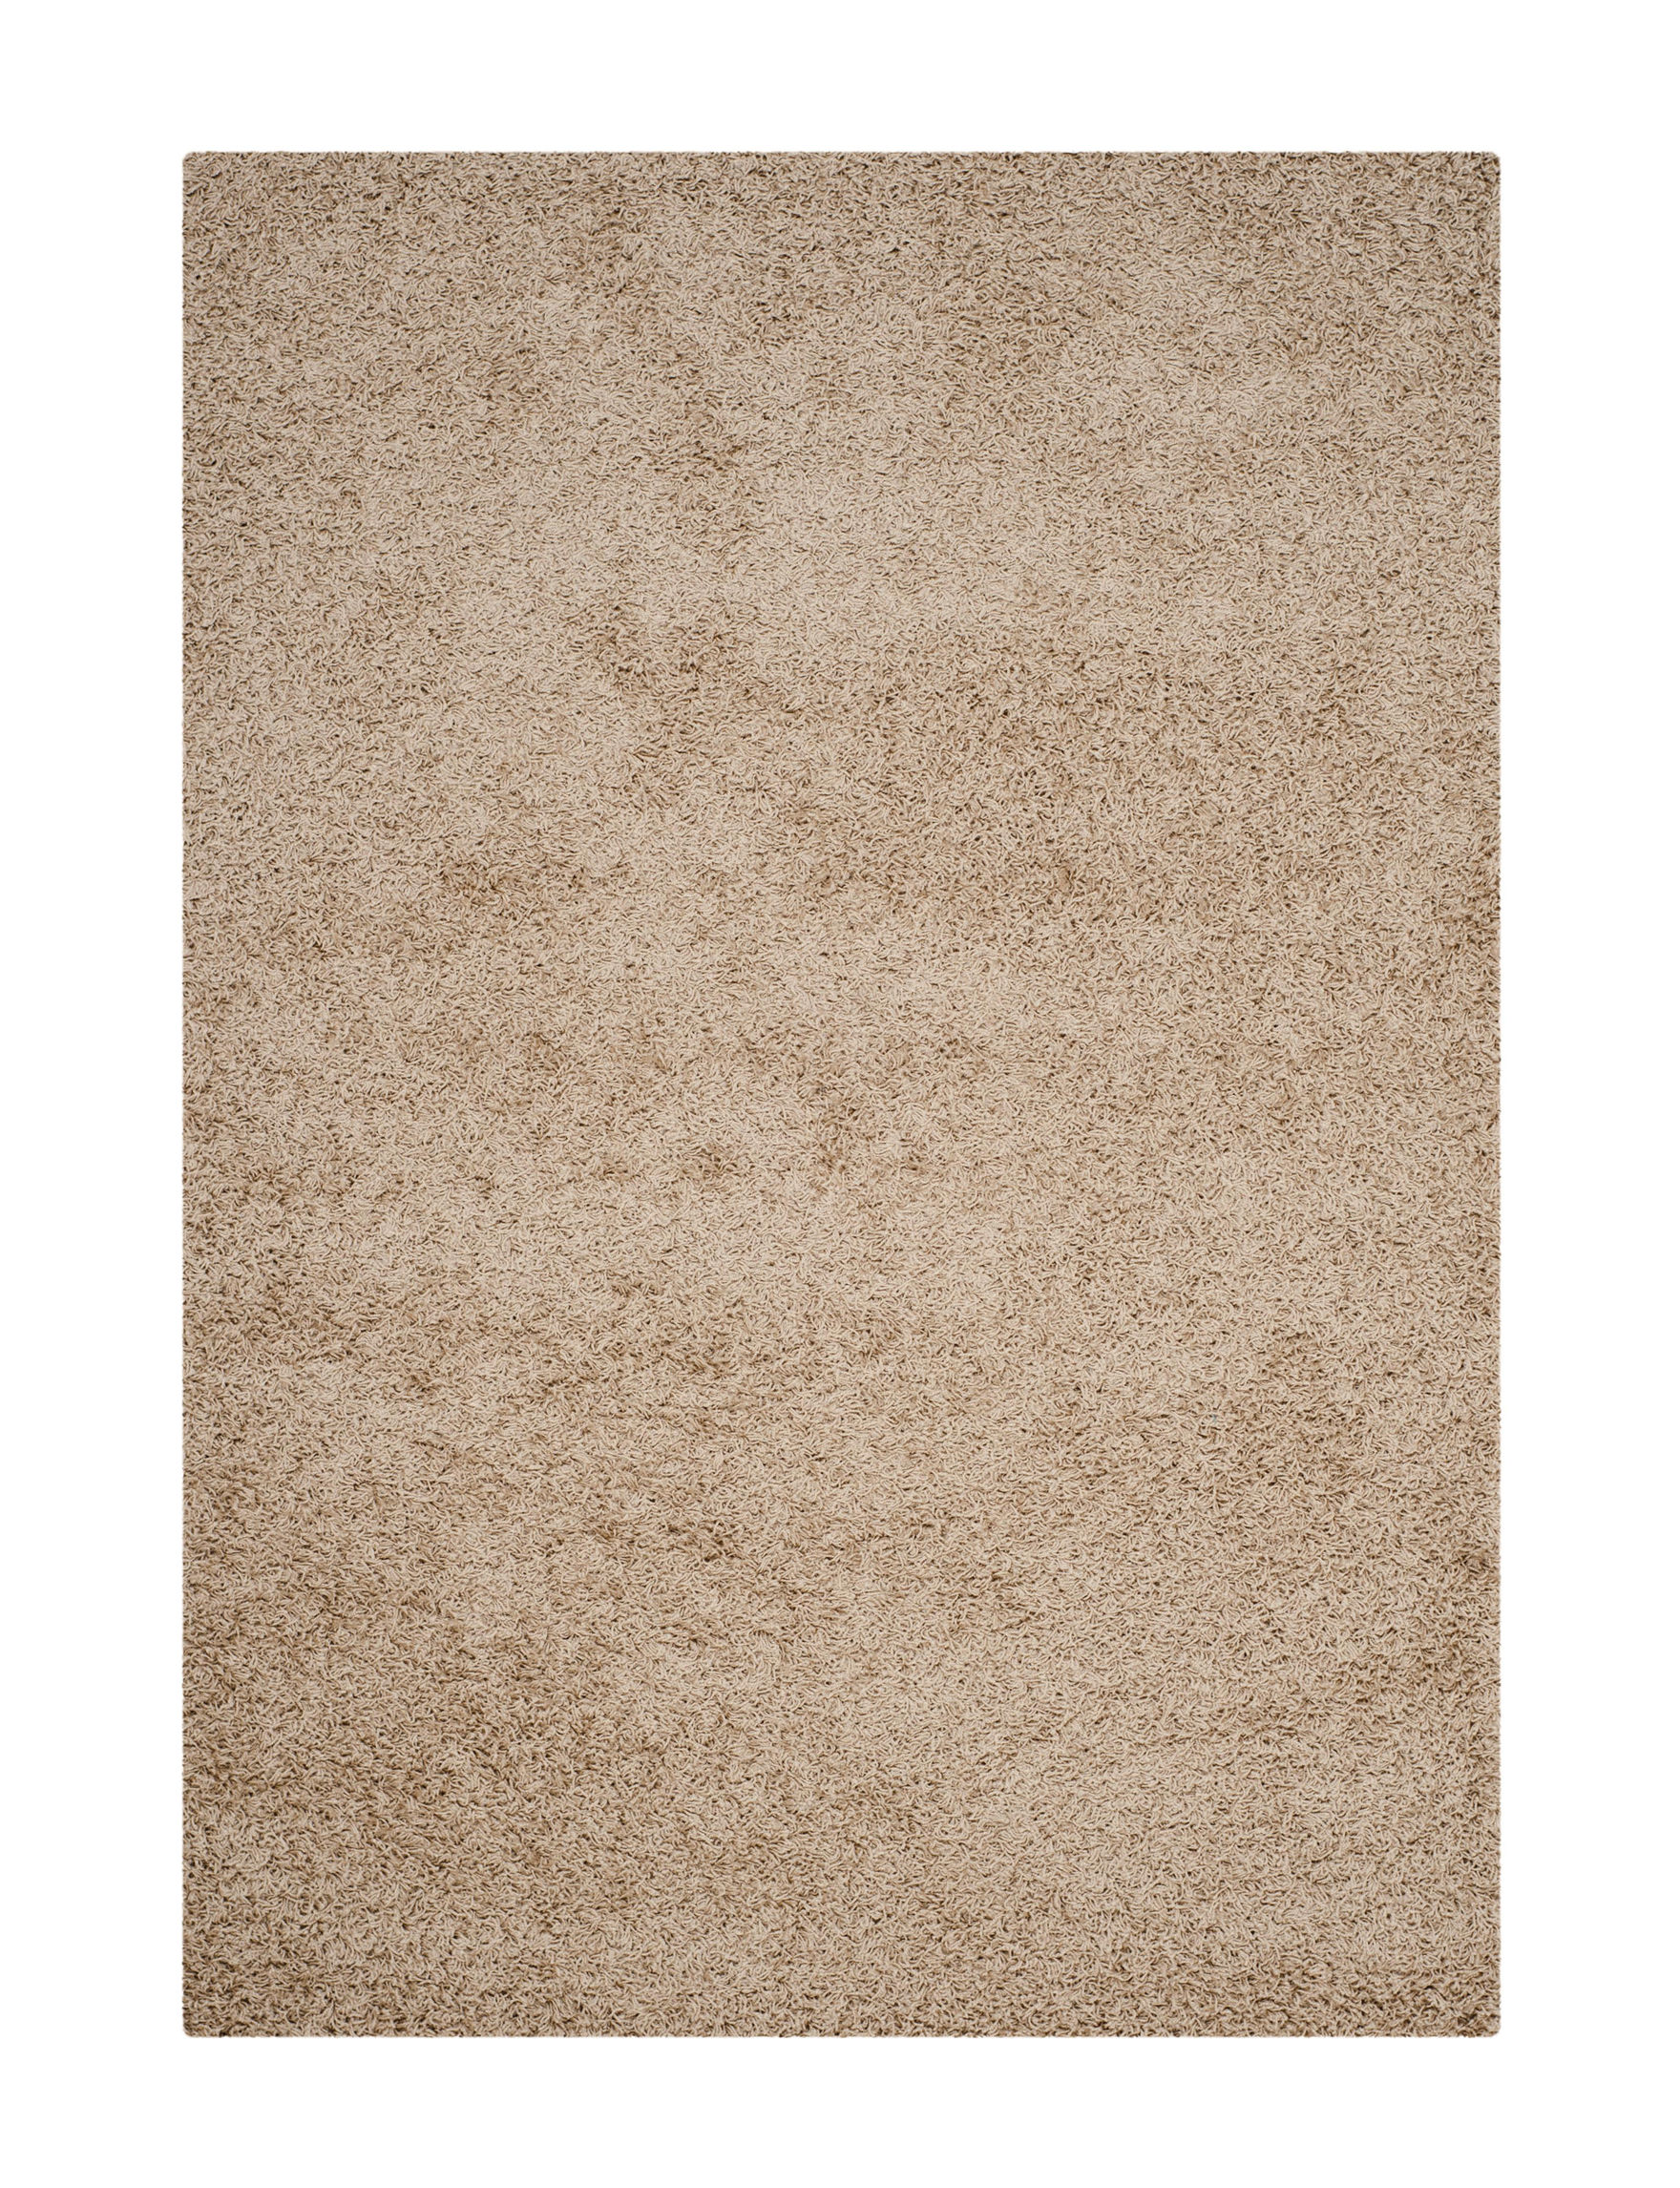 Safavieh Beige Area Rugs